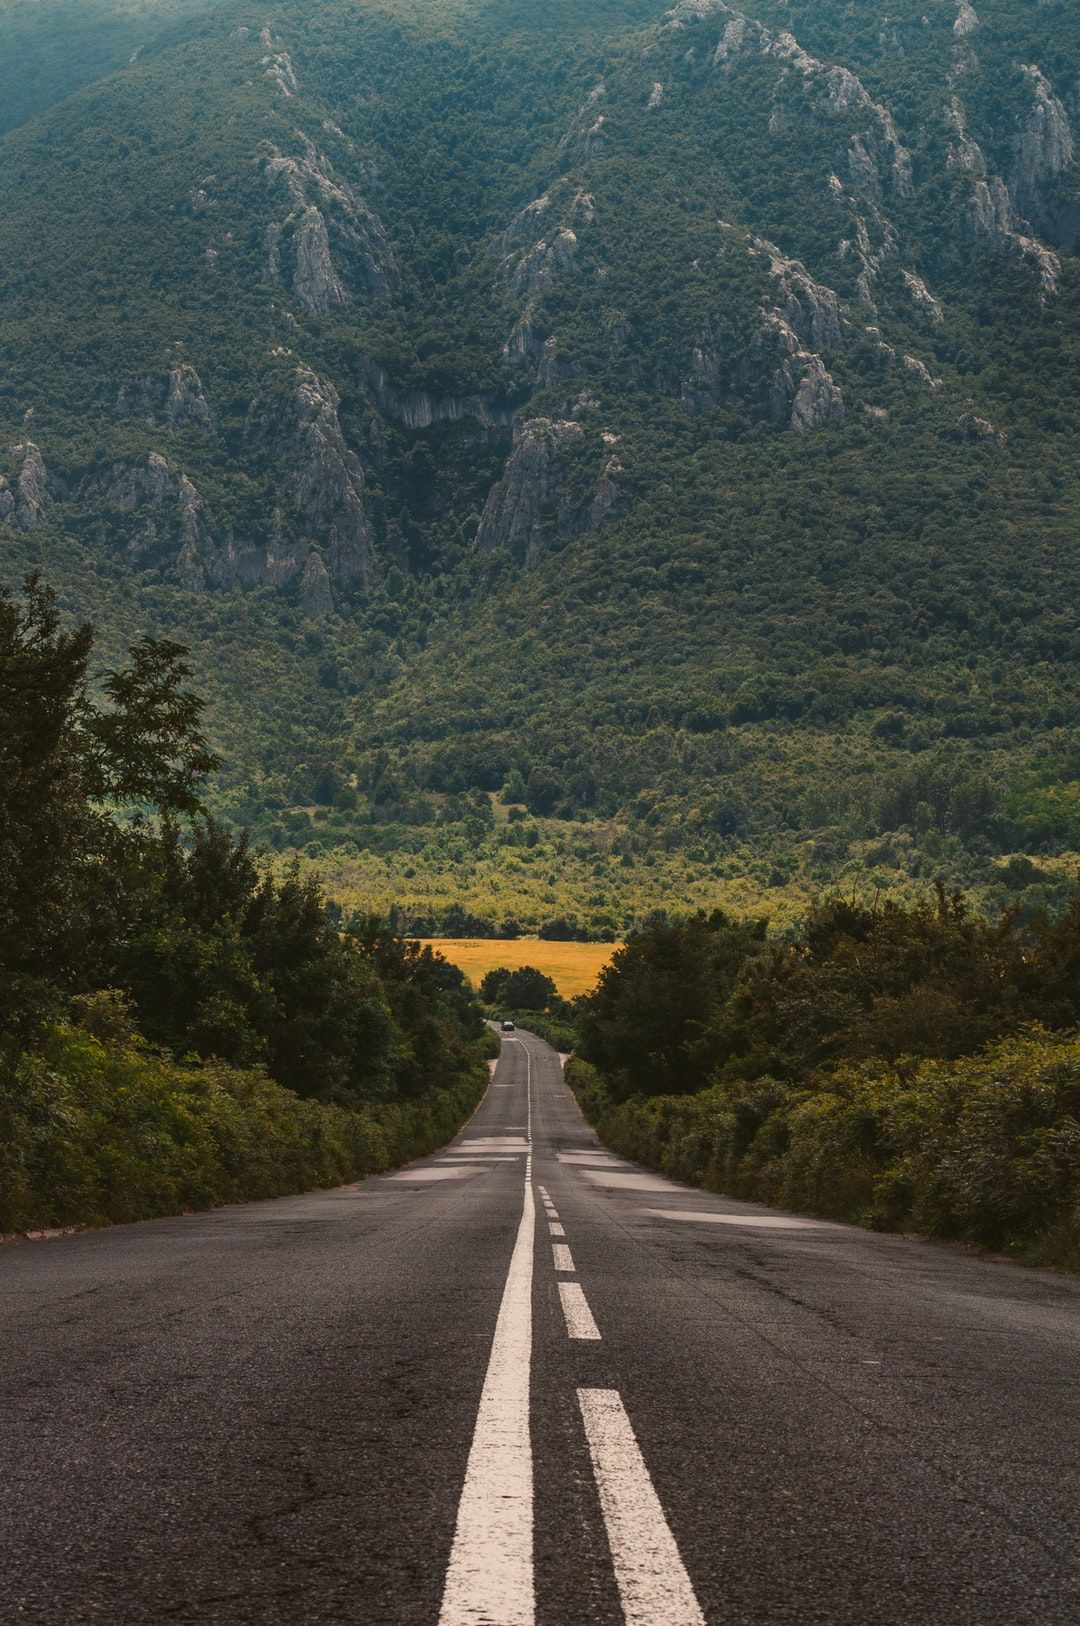 Download This Free Hd Photo Of Road Forest Tree And Mountain In Vratsa Bulgaria By Evgeni Evgeniev Evgenievgenie Photos Paysage Image De Fond Image Nature Hd wallpaper road turn trees mountain